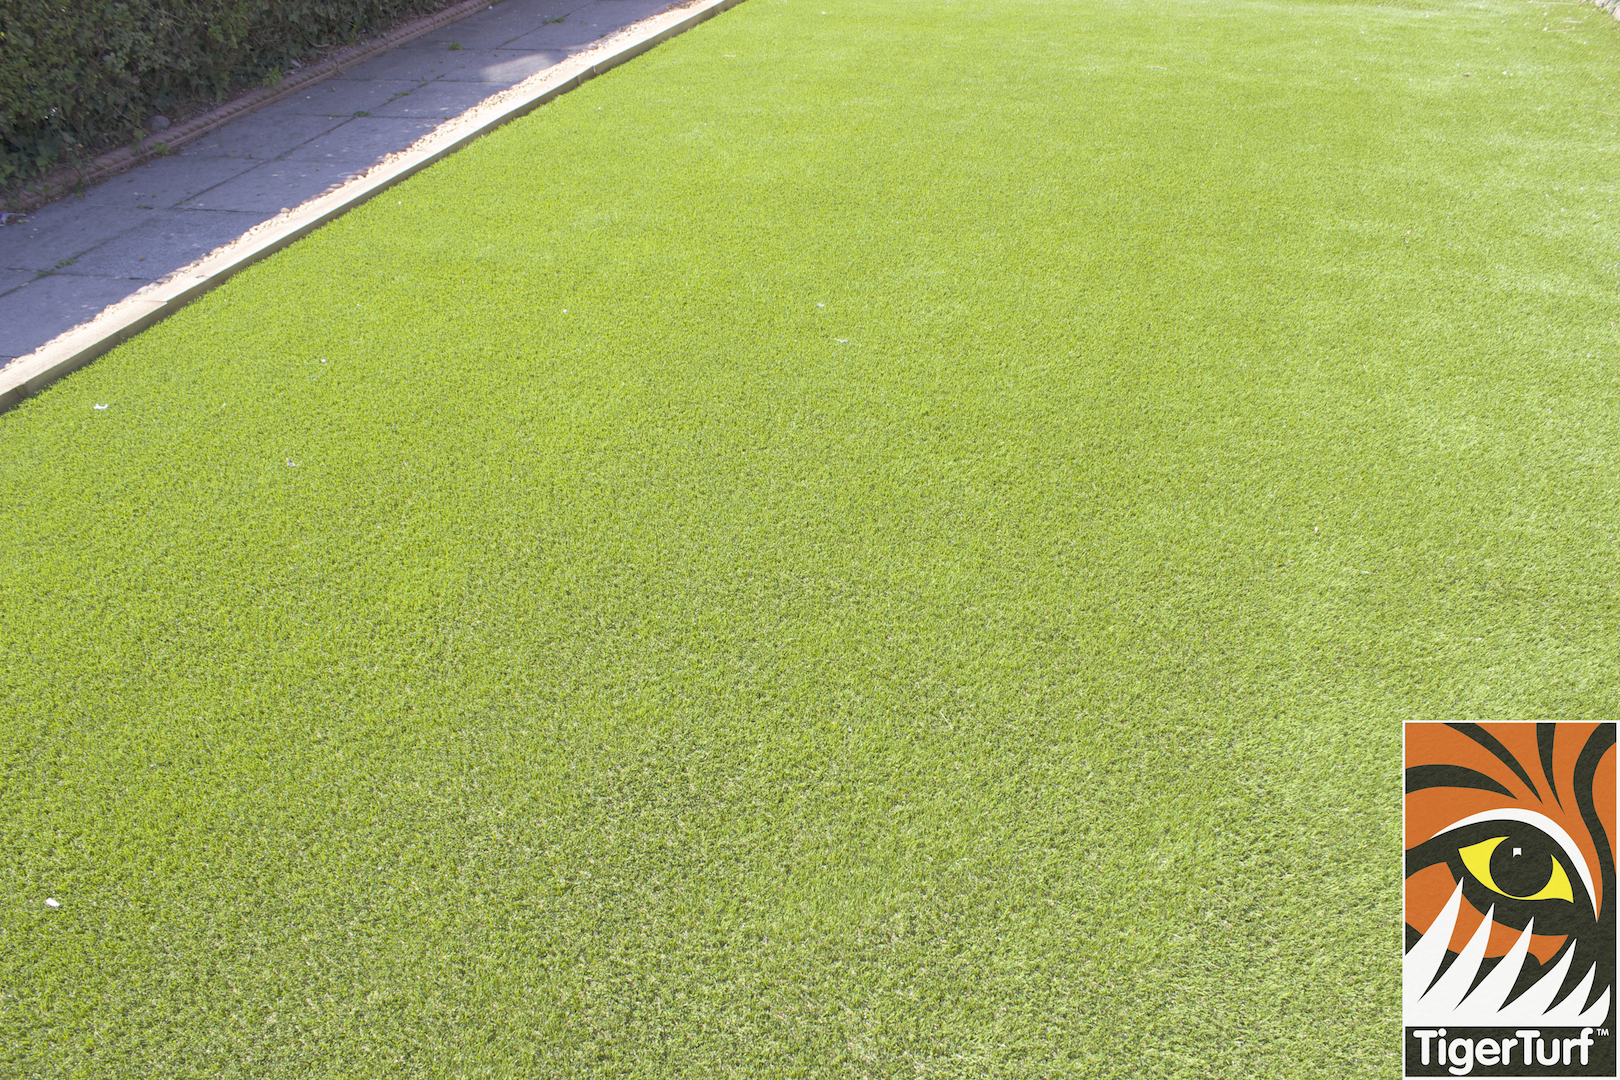 TigerTurf Finesse Deluxe lawn